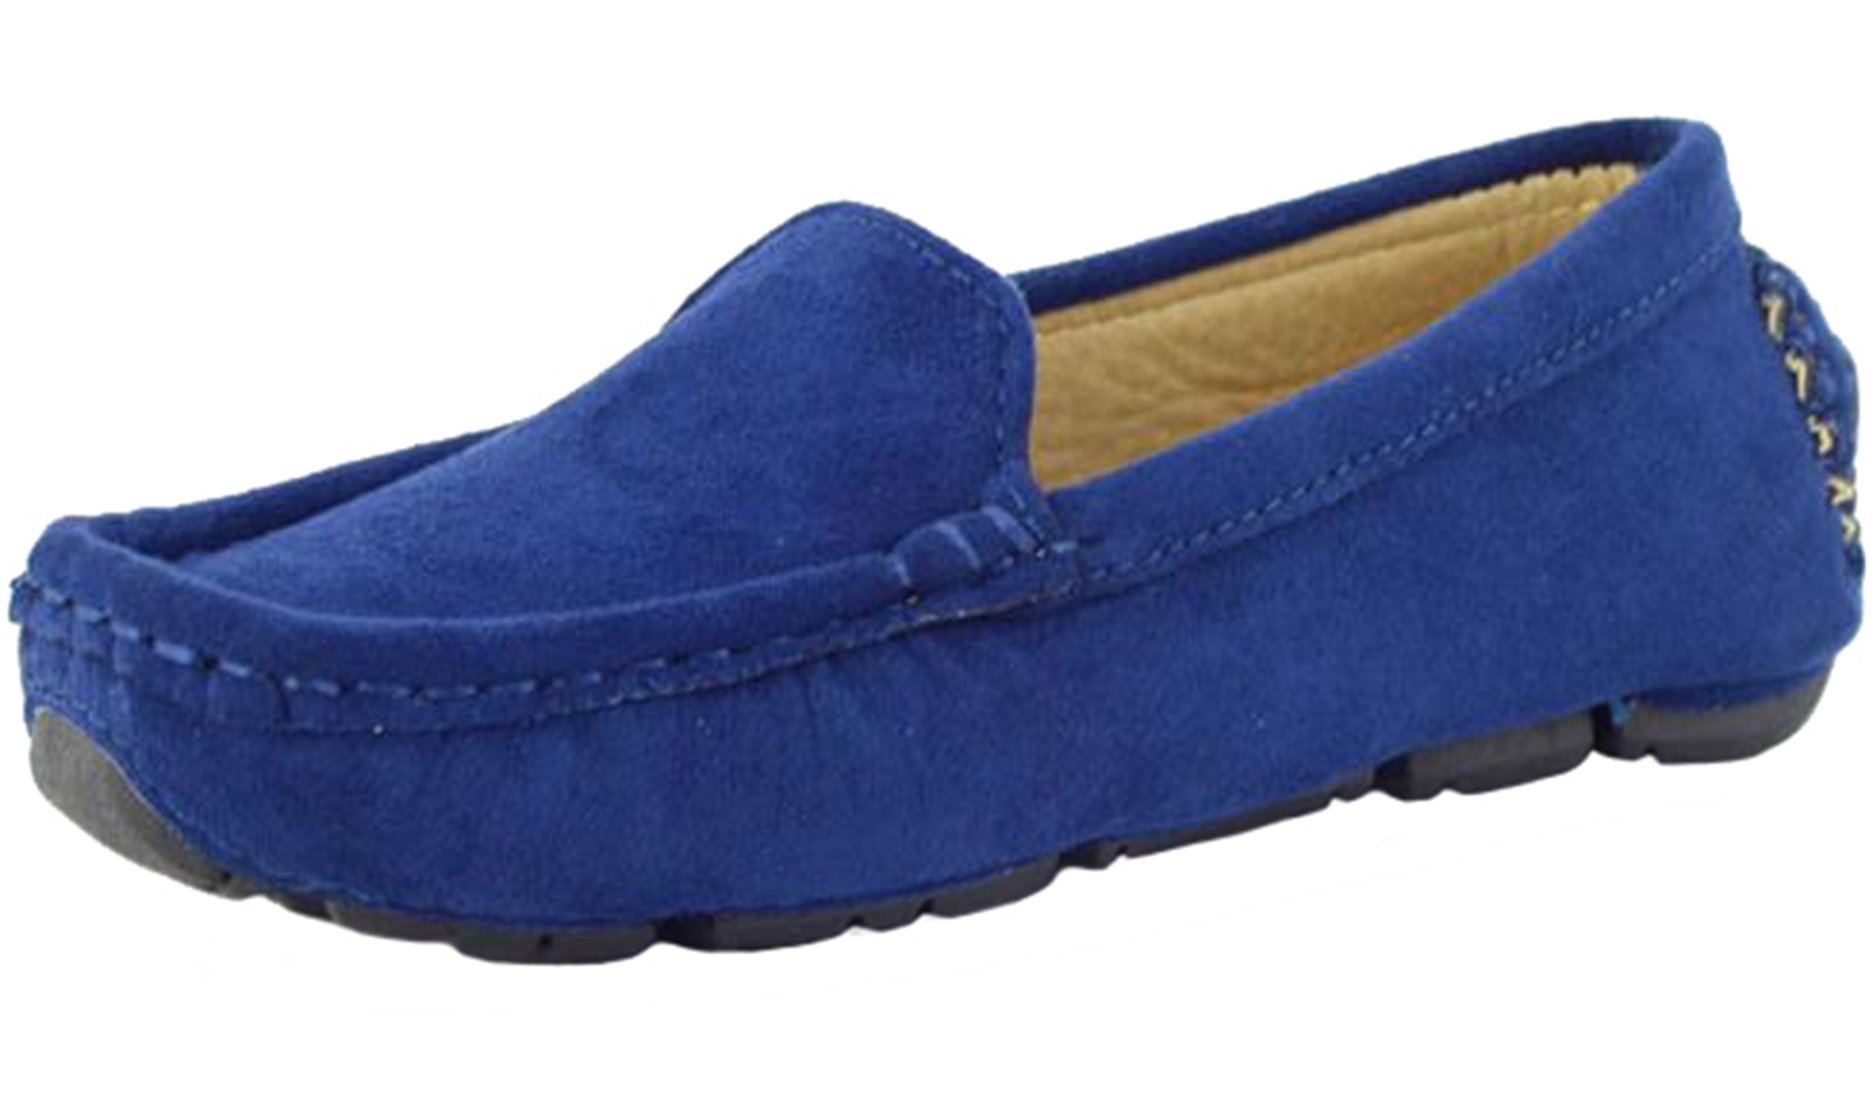 PPXID Girl's Boy's Suede Slip-on Loafers Casual Shoes(Toddler/Little Kid/Big Kid)-Blue 8 US Size